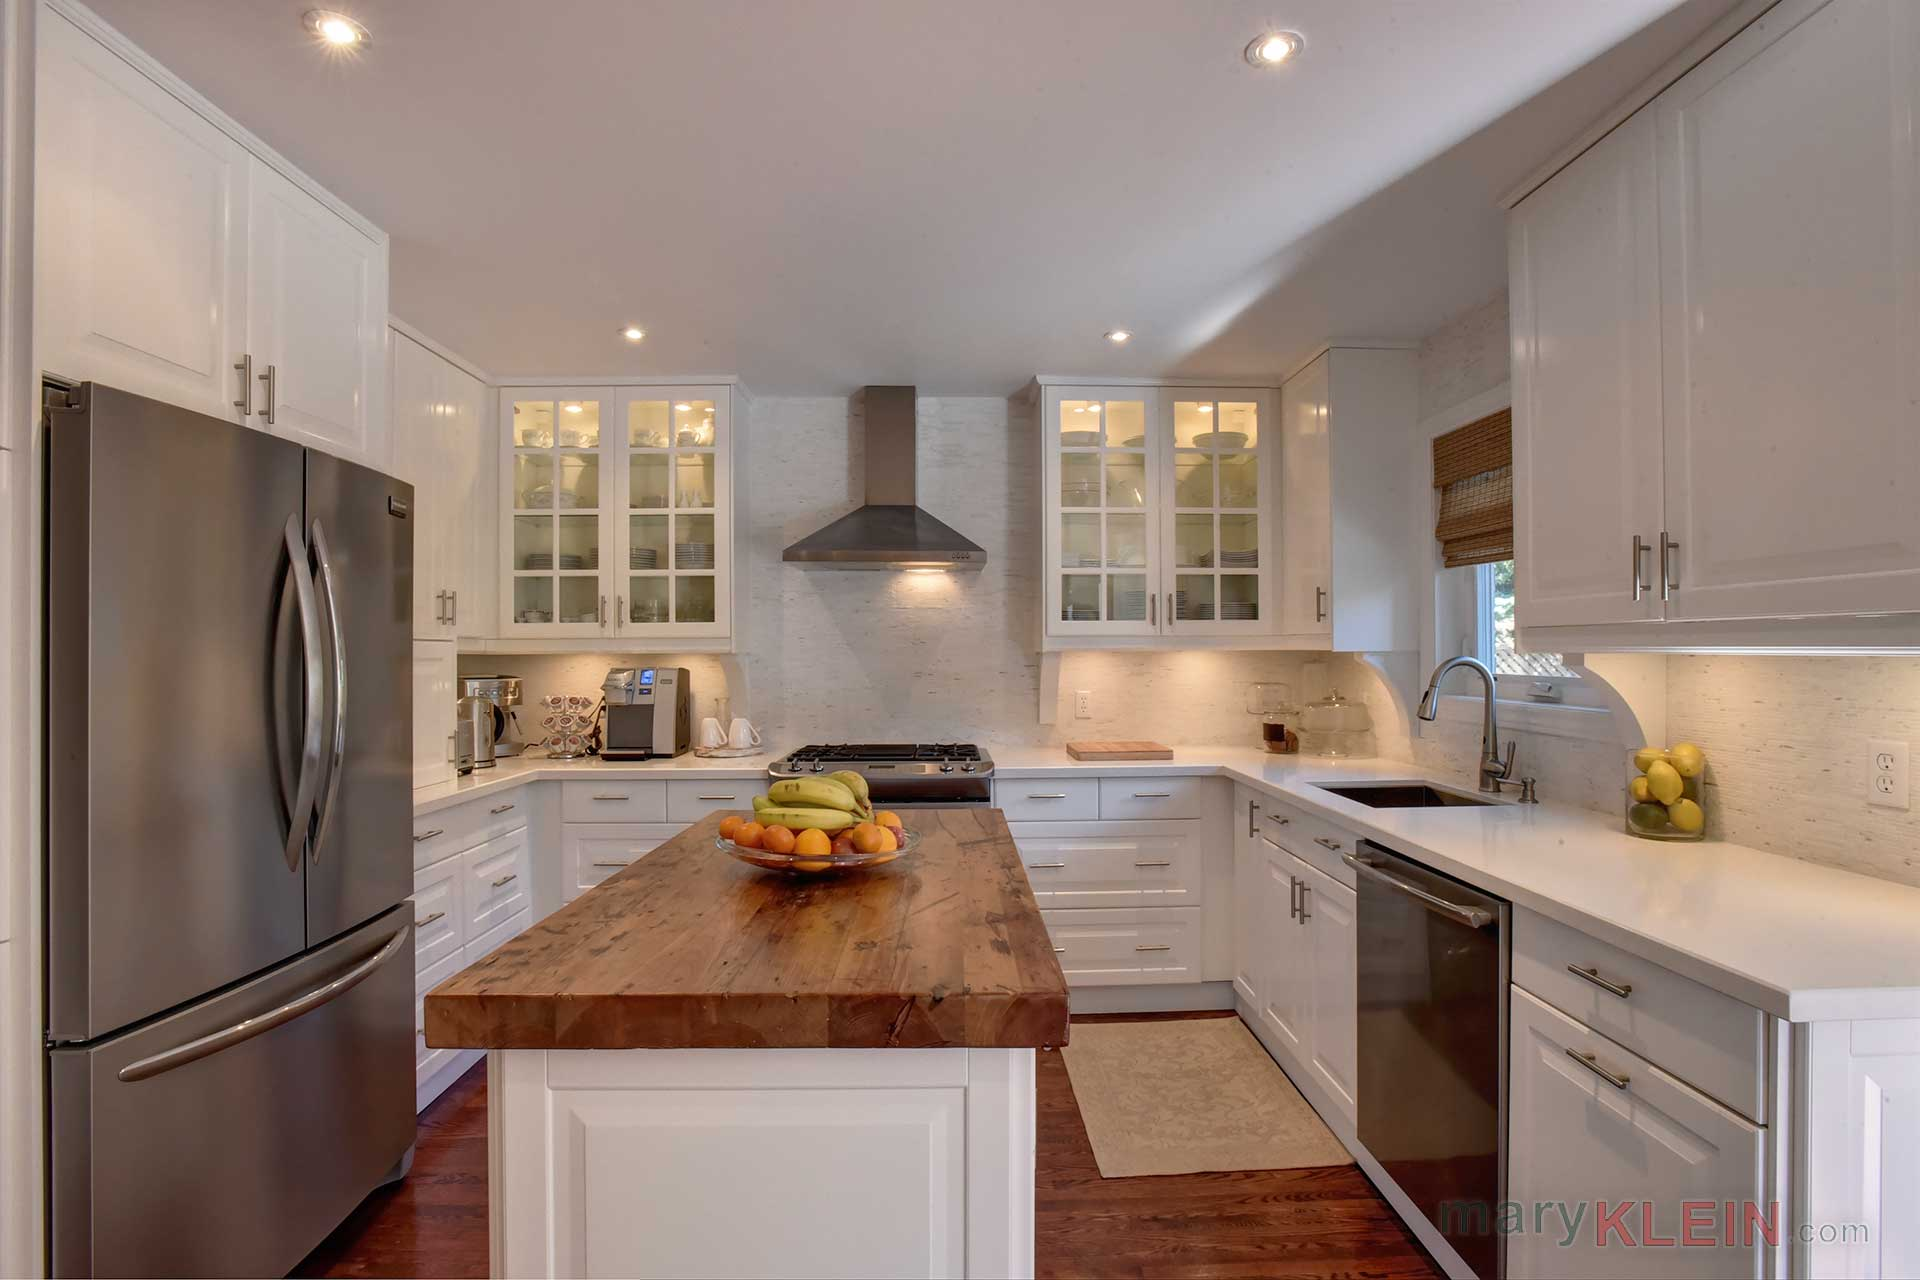 Frigidaire Stainless Steel Appliances